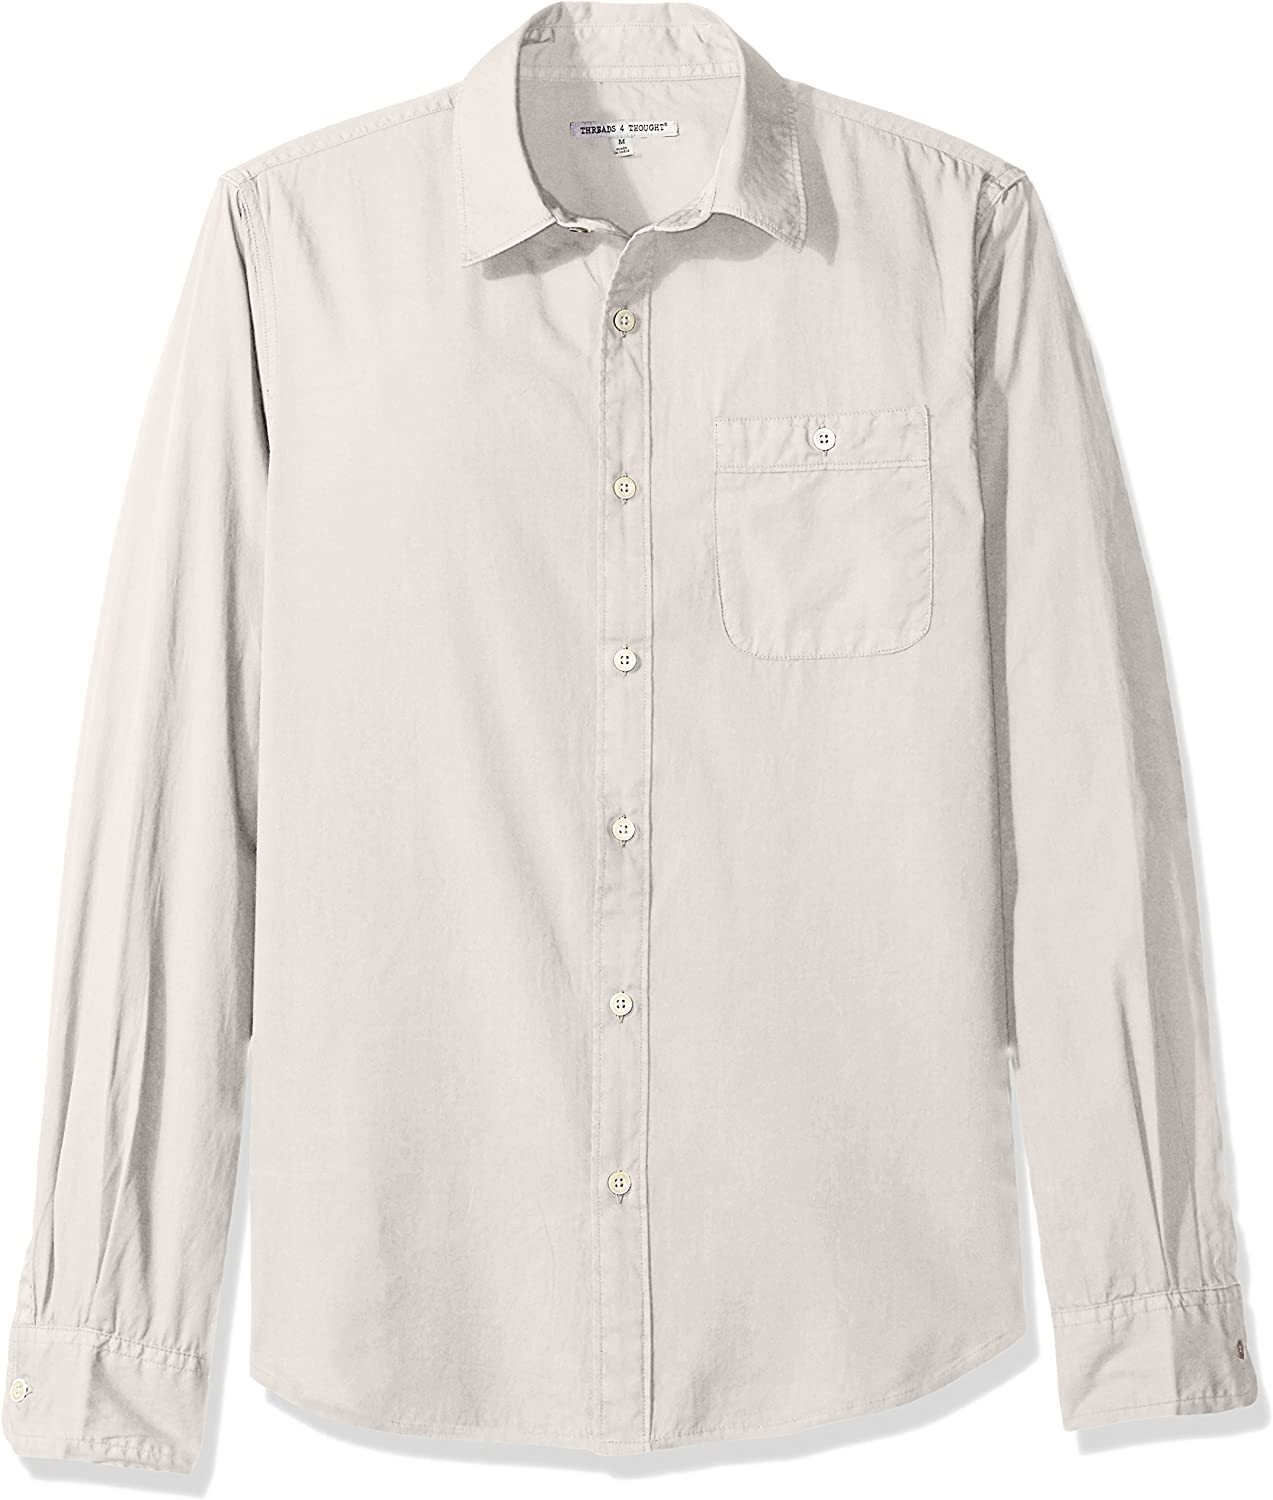 Threads 4 Thought Mens Standard Sustainable Organic Cotton Long Sleeve Shirt